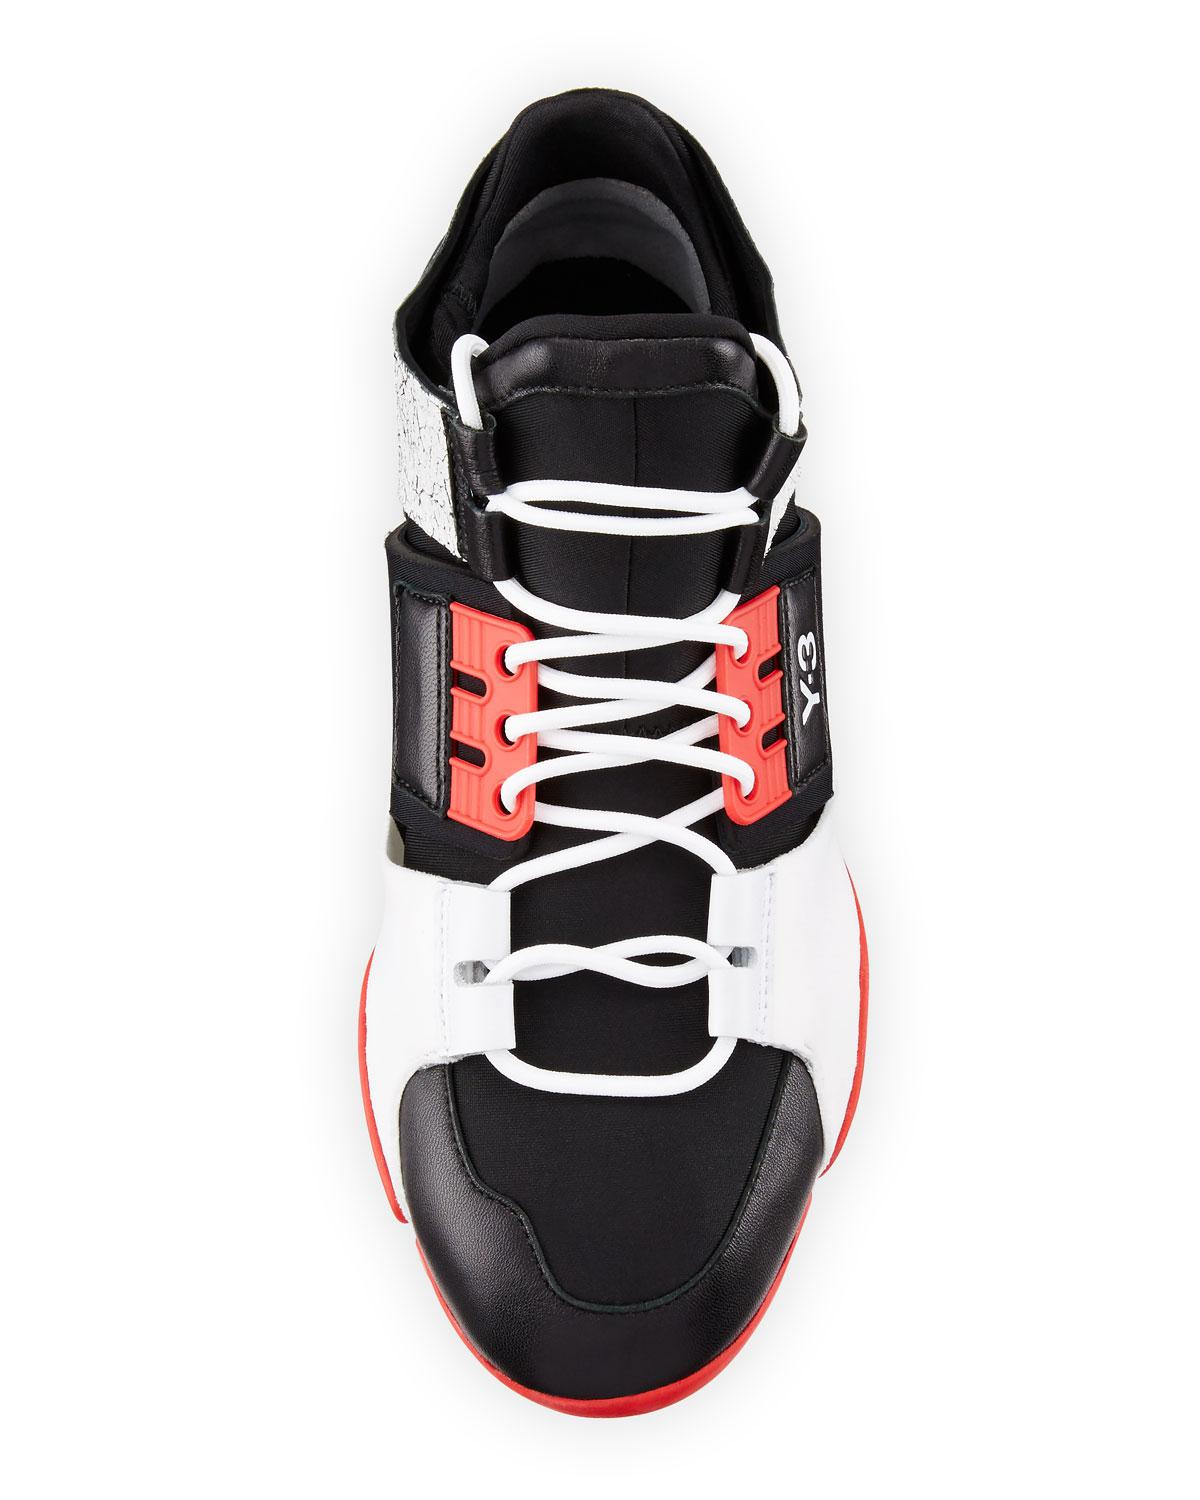 b3600a15adfbb Lyst - Y-3 Kanja Stretch Sneakers in Black for Men